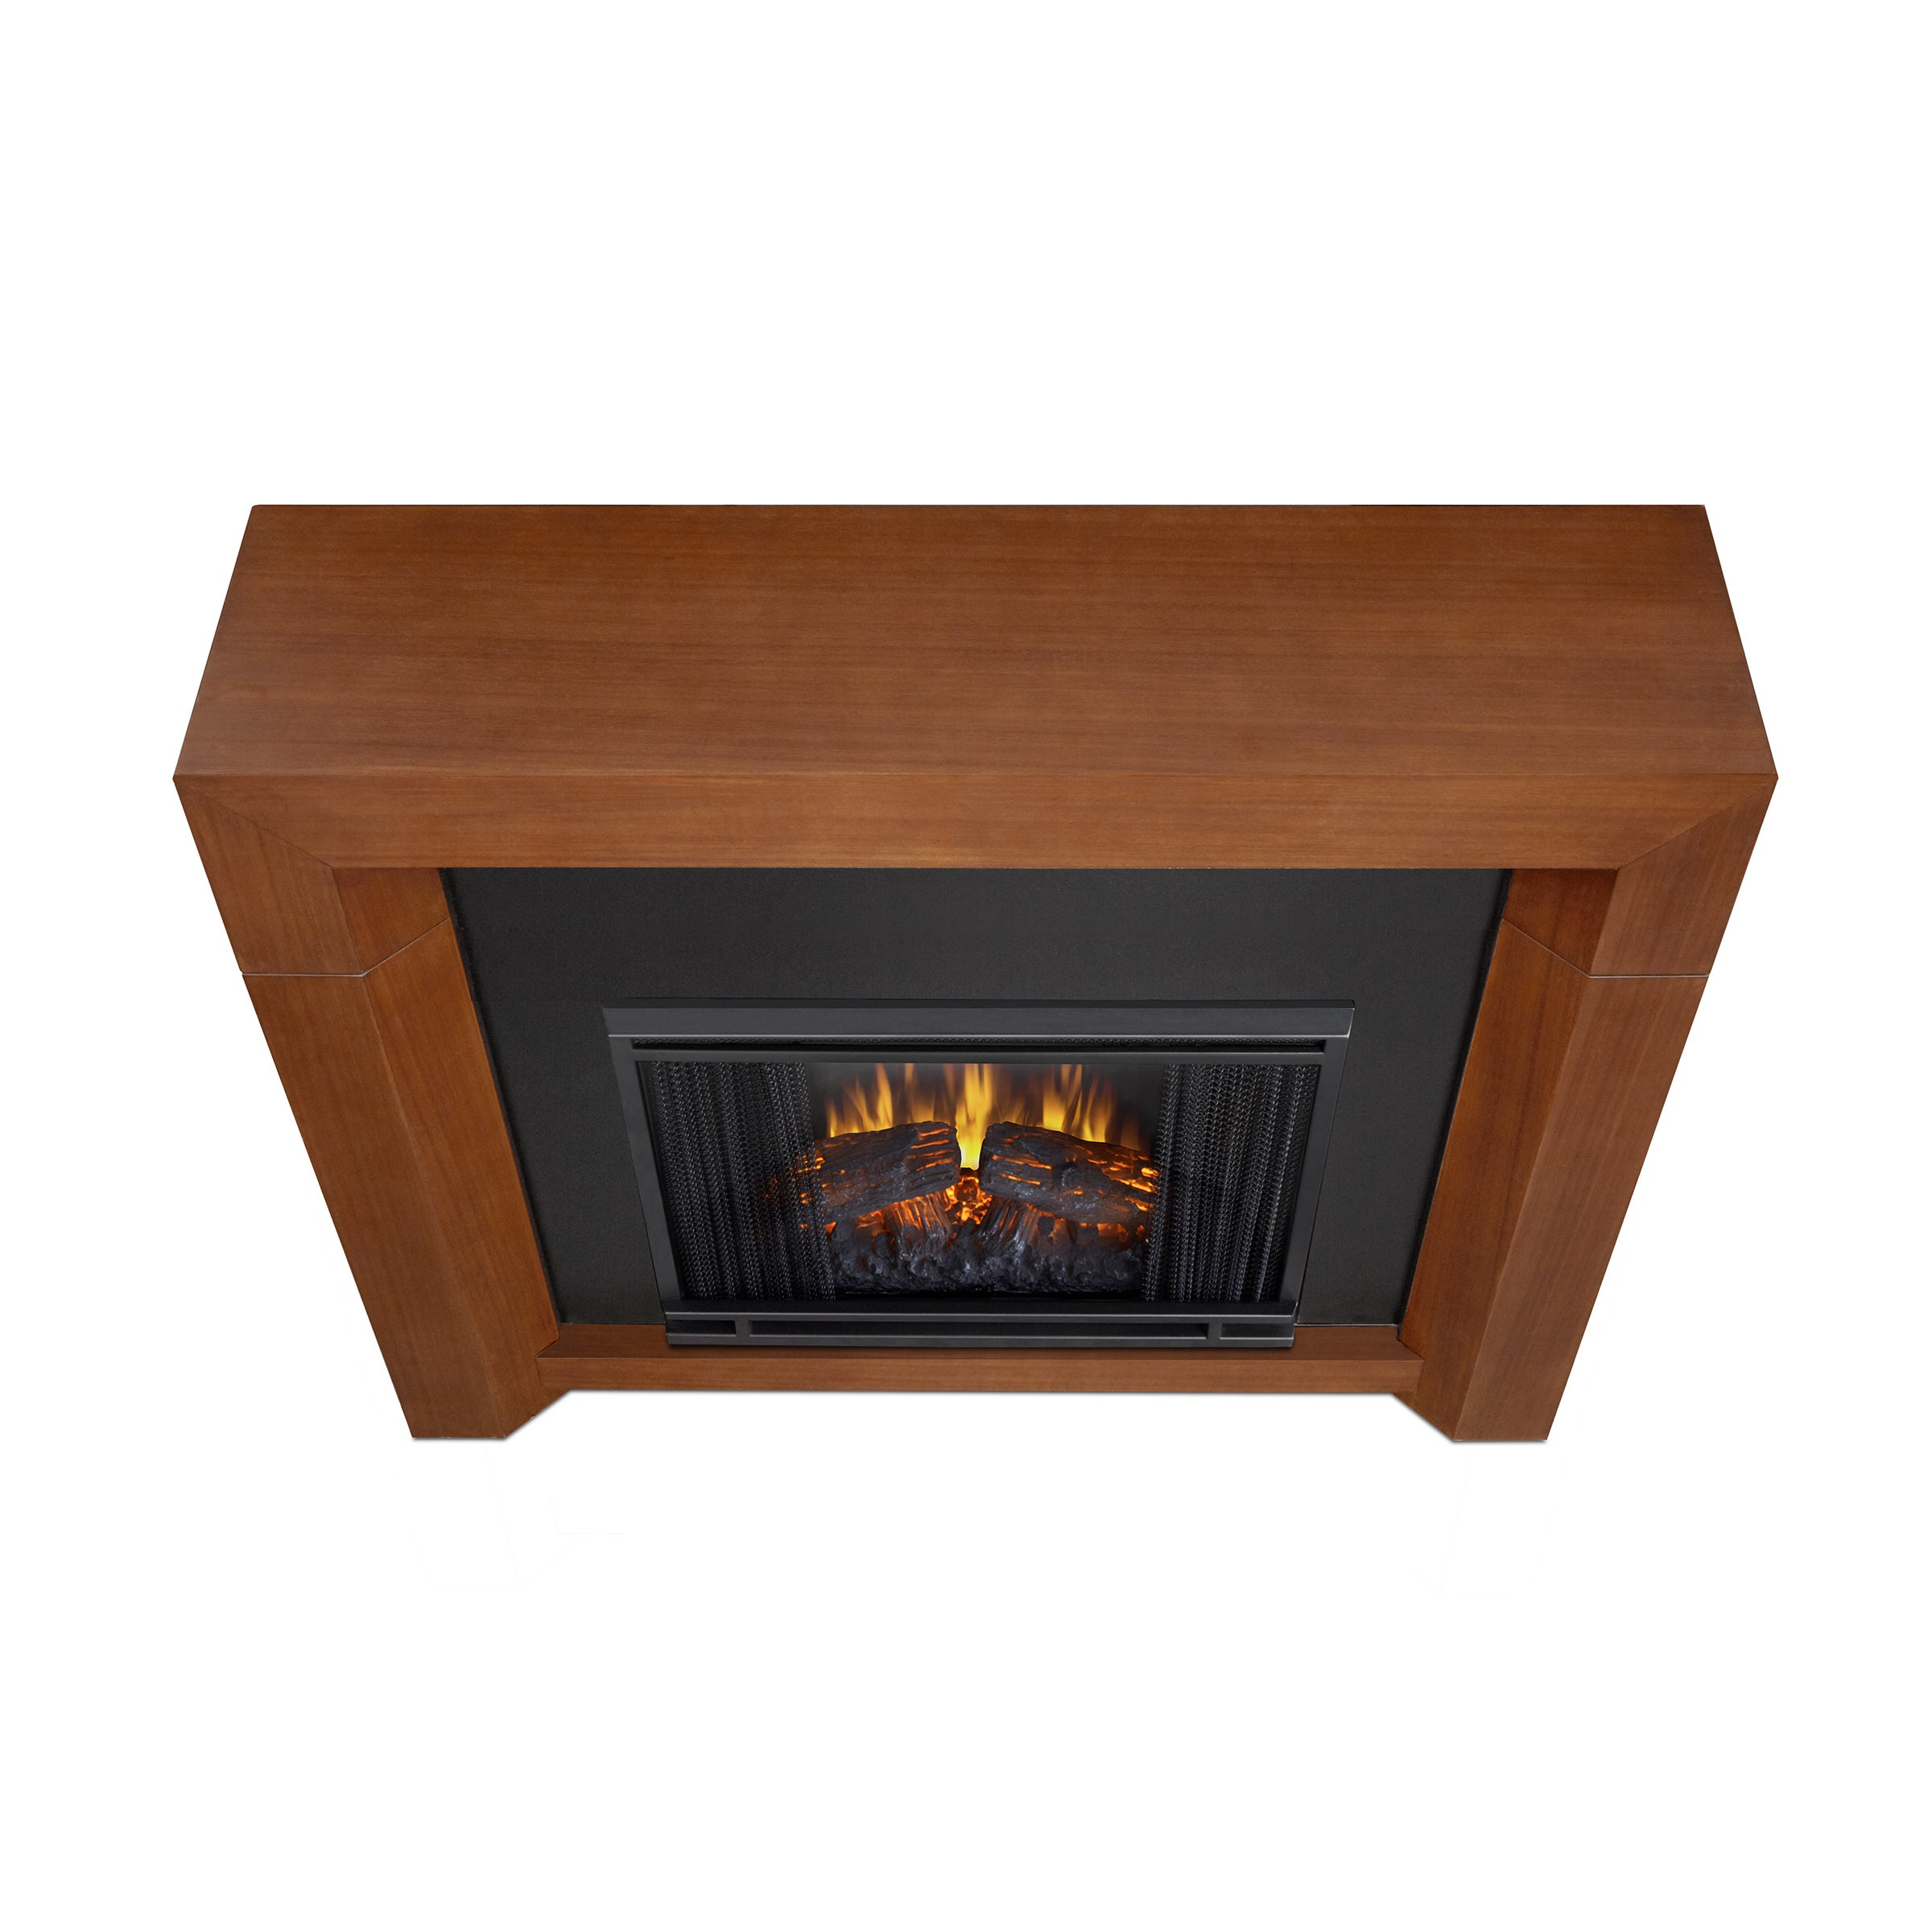 sport curated ideas jackpaolino sense electric buy stuff fireplace fireplaces to heater vintage